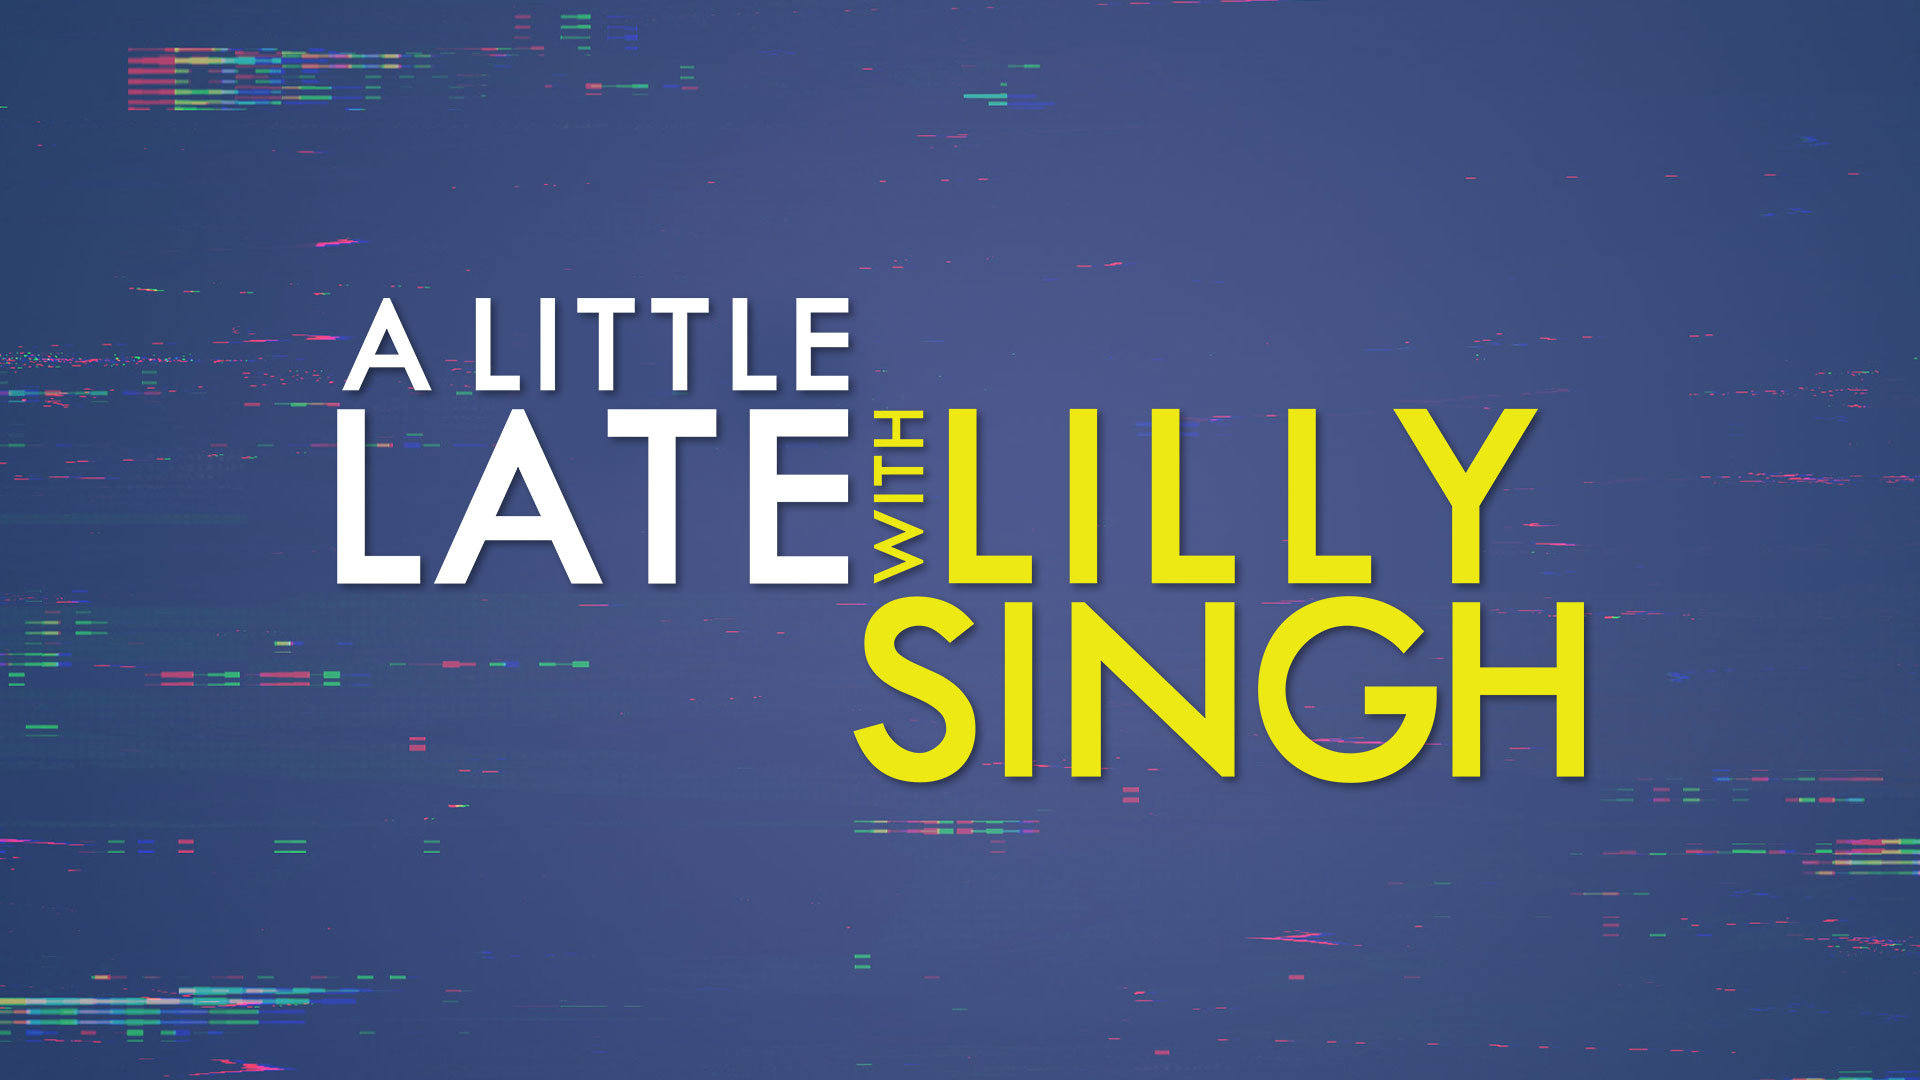 A Little Late with Lilly Singh on FREECABLE TV